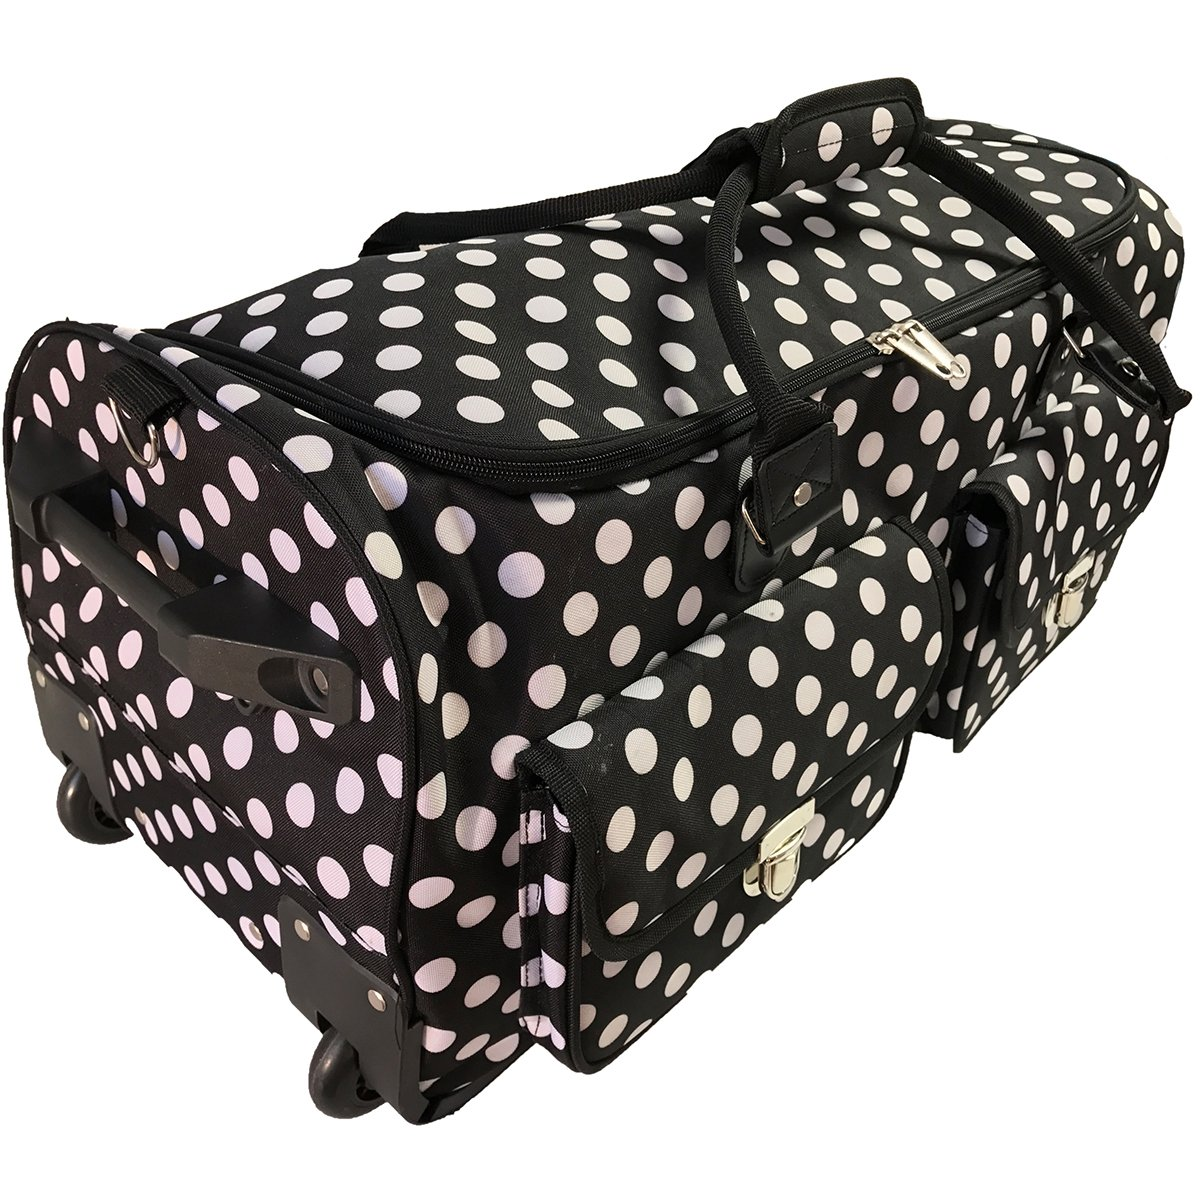 CGull 10-0014 Rolling Craft Machine & Supply Bag 2.0, Black with White by CGull